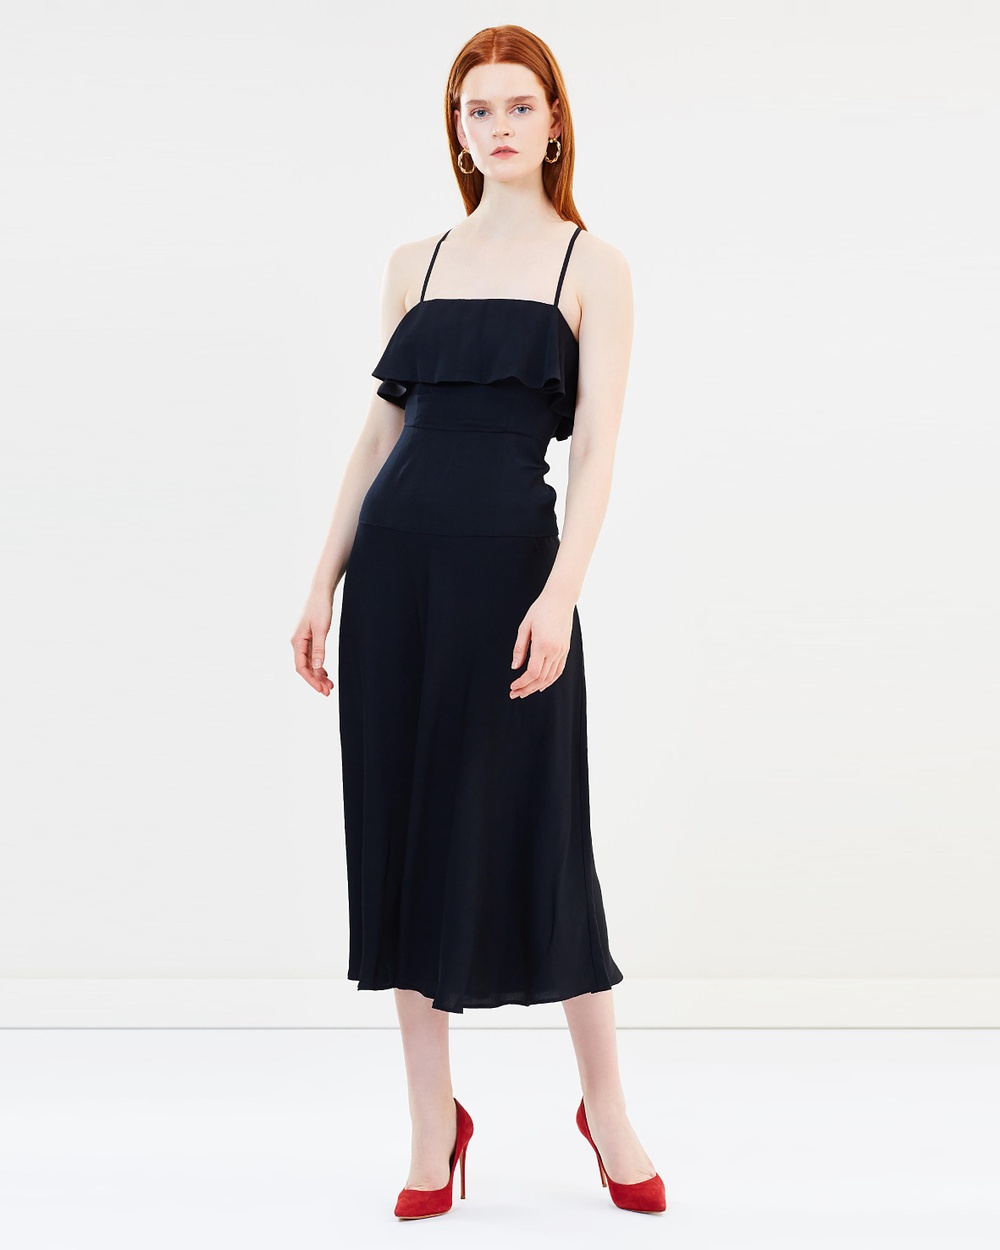 MAX & Co. Paino Dress Dresses Black Paino Dress